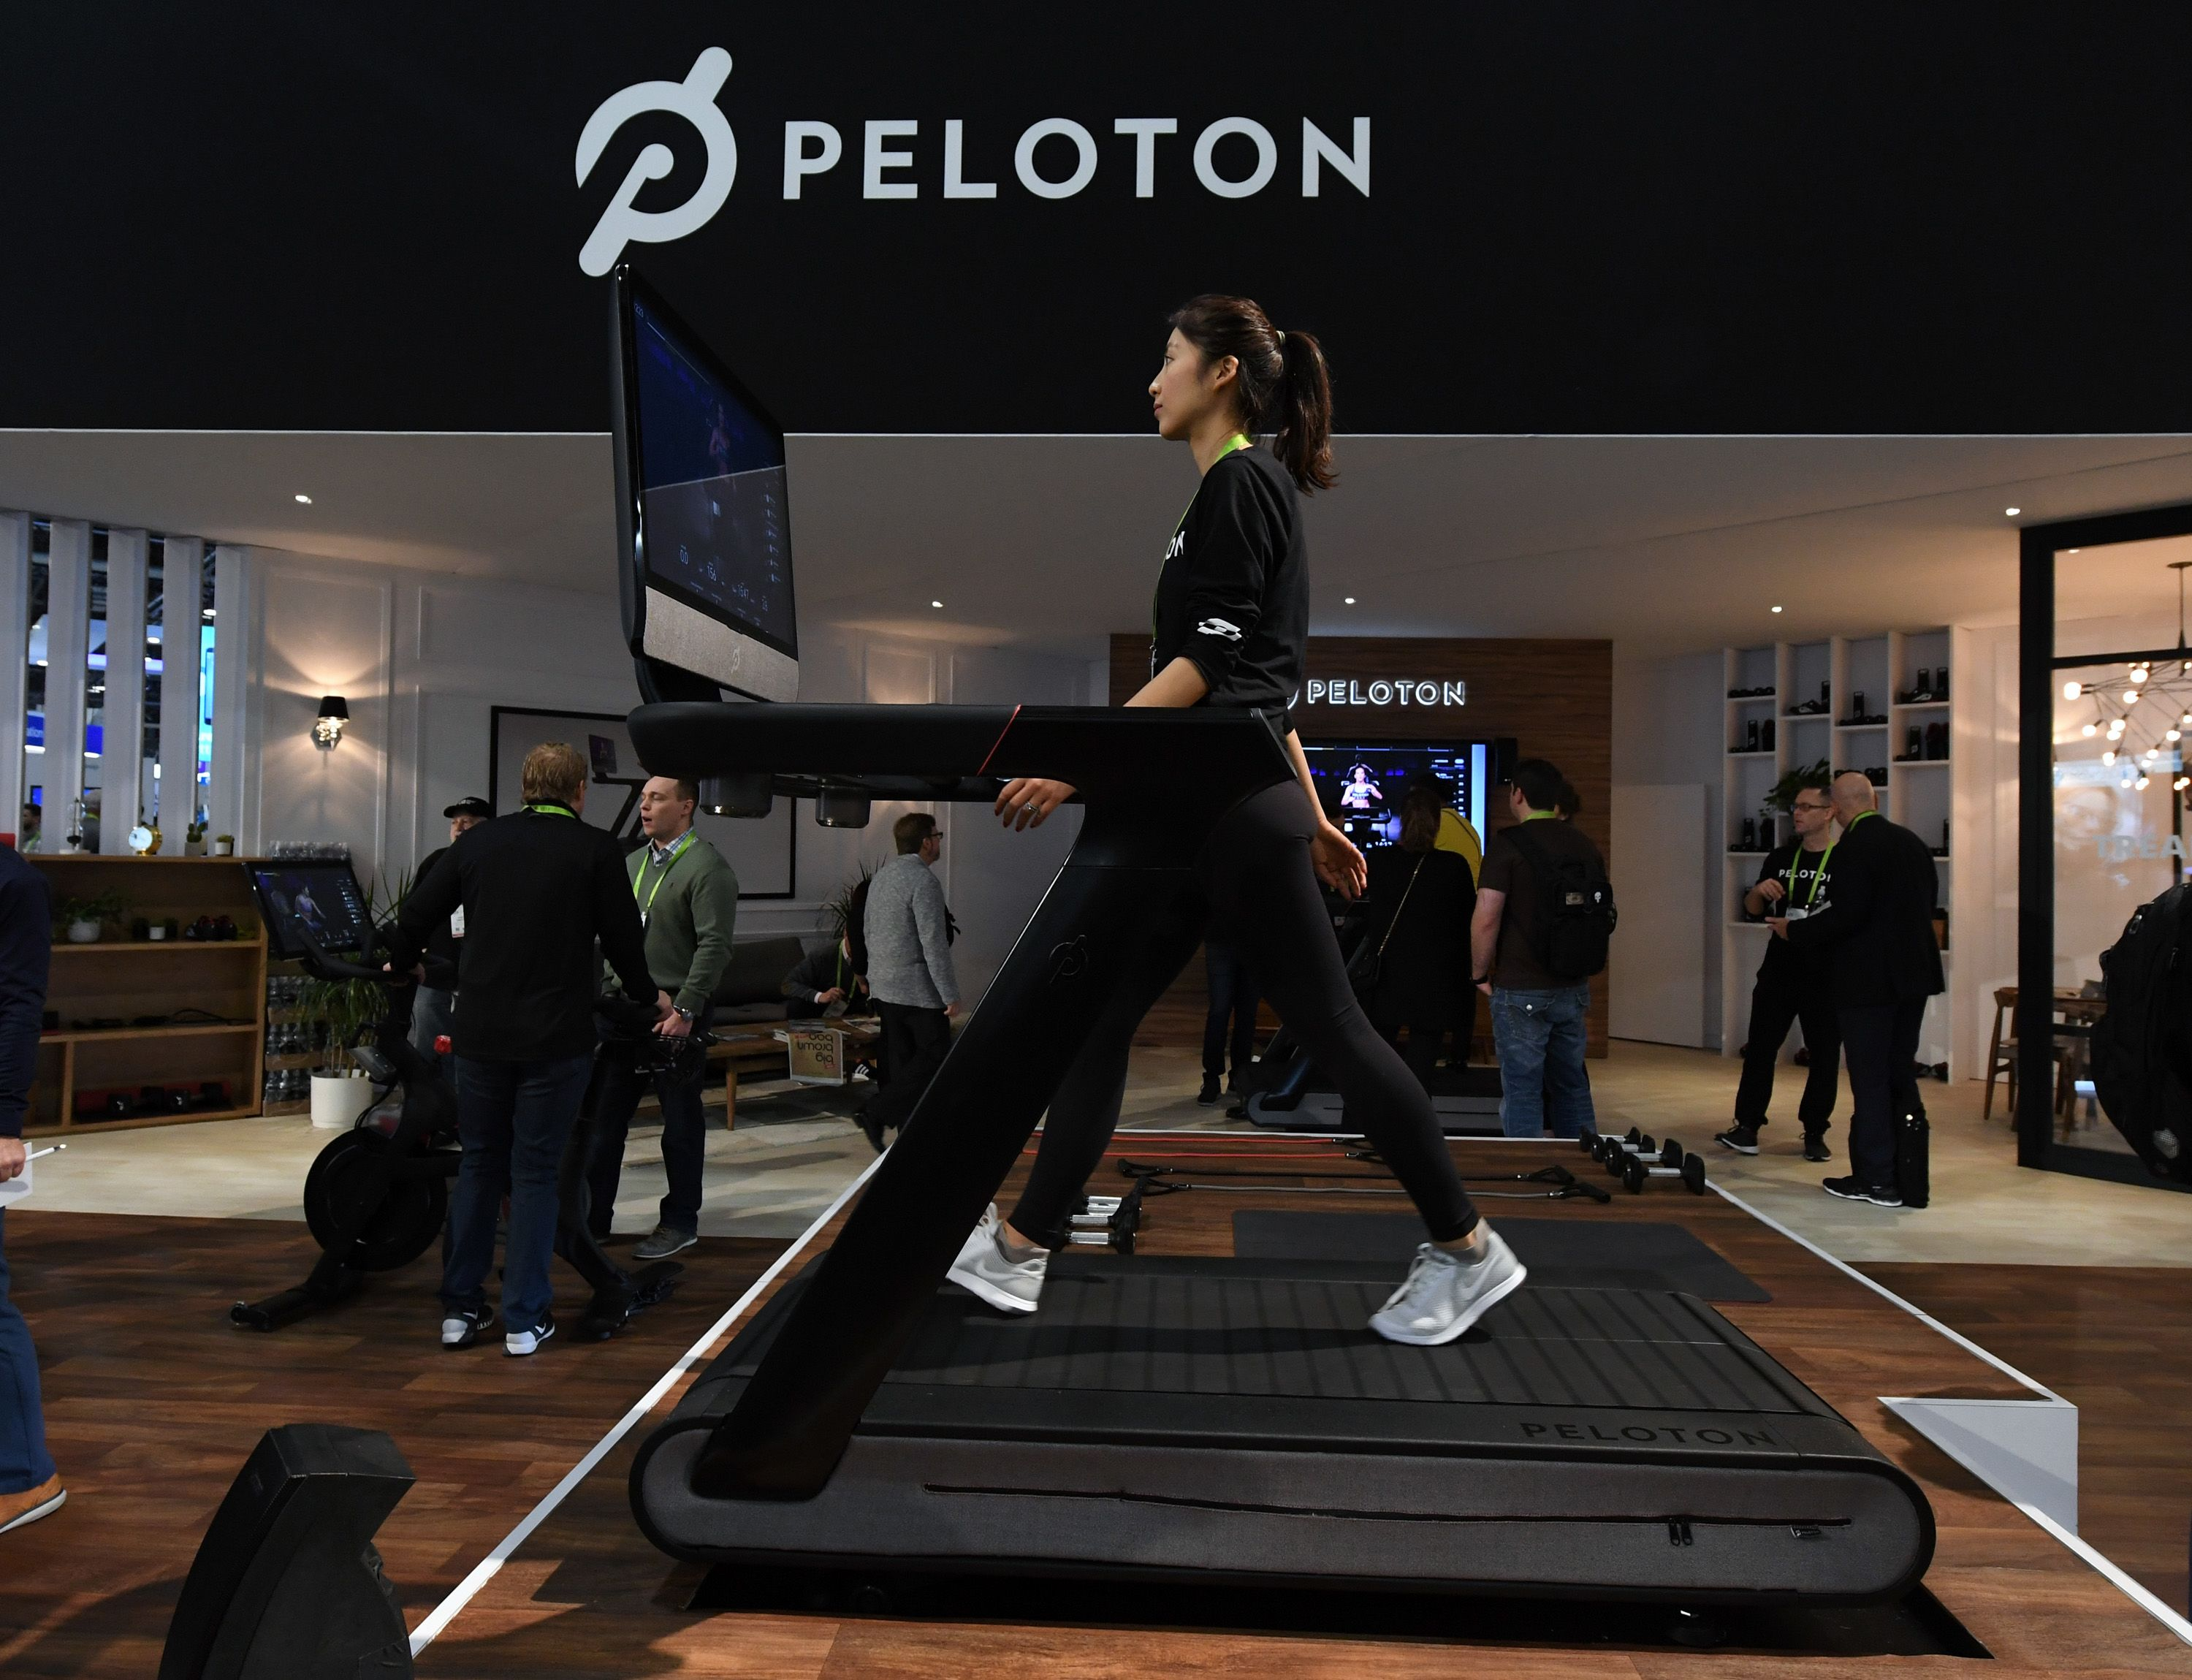 Fitness company Peloton says it has filed for an IPO